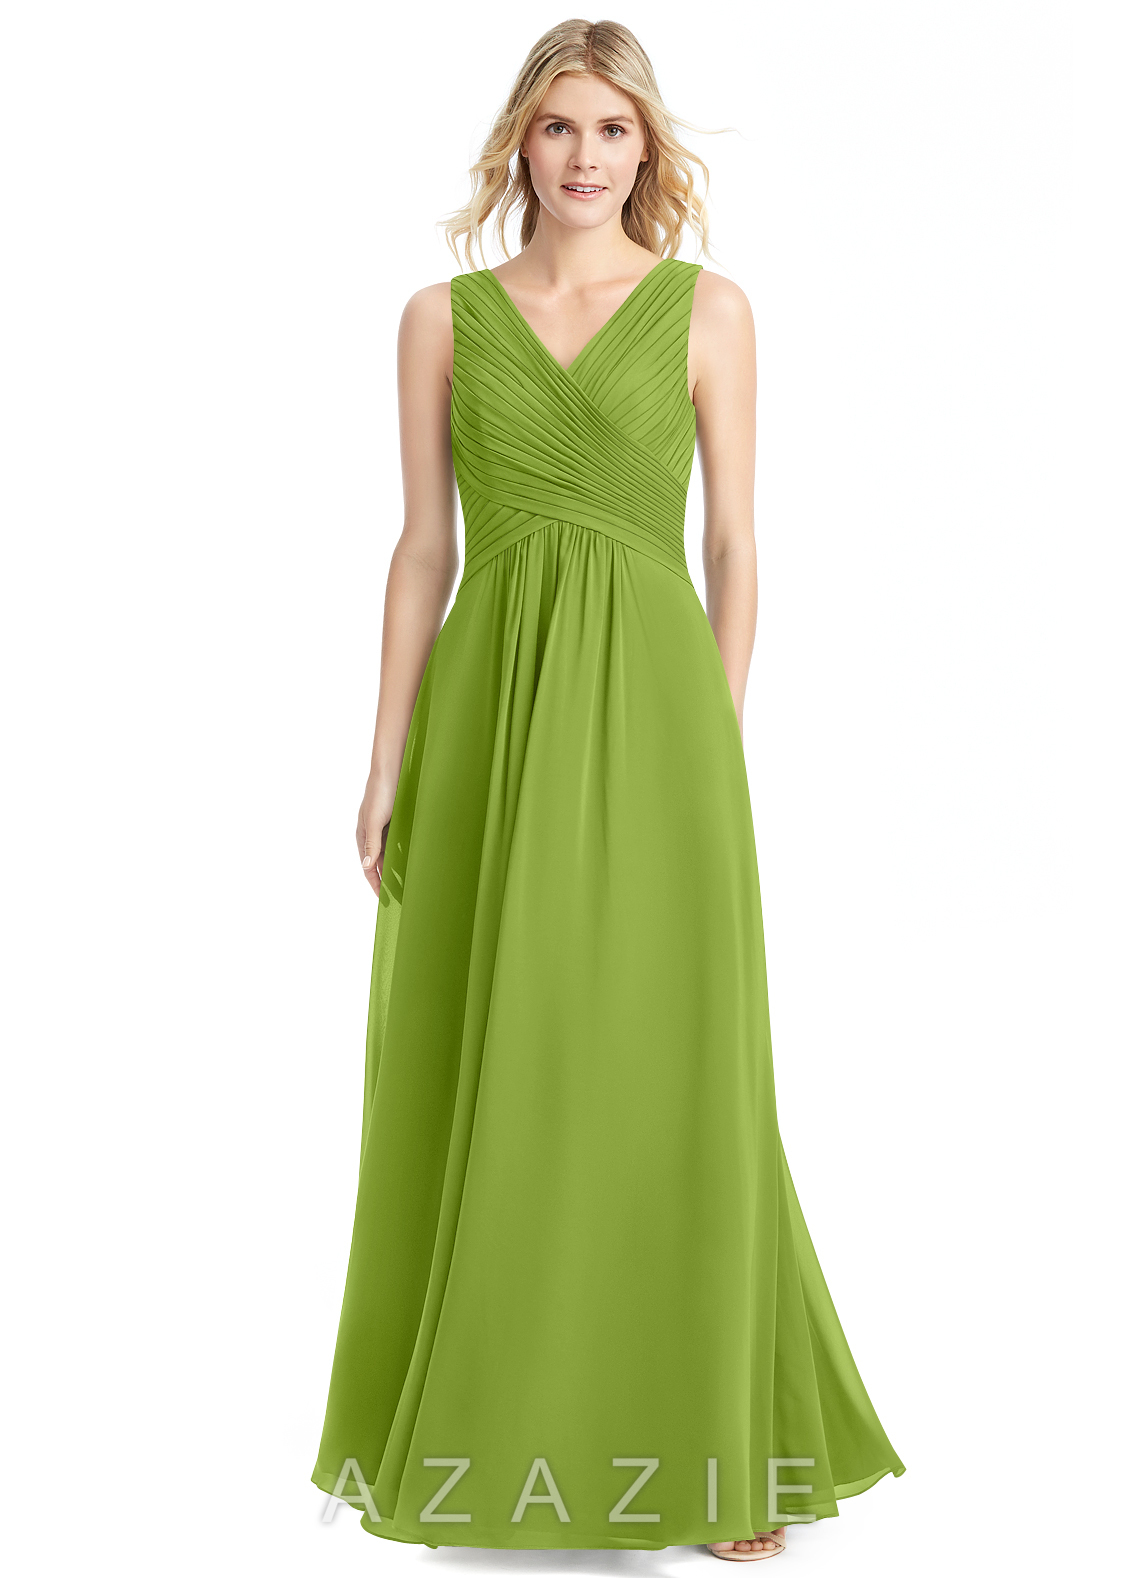 Azazie Flora Bridesmaid Dress  Azazie